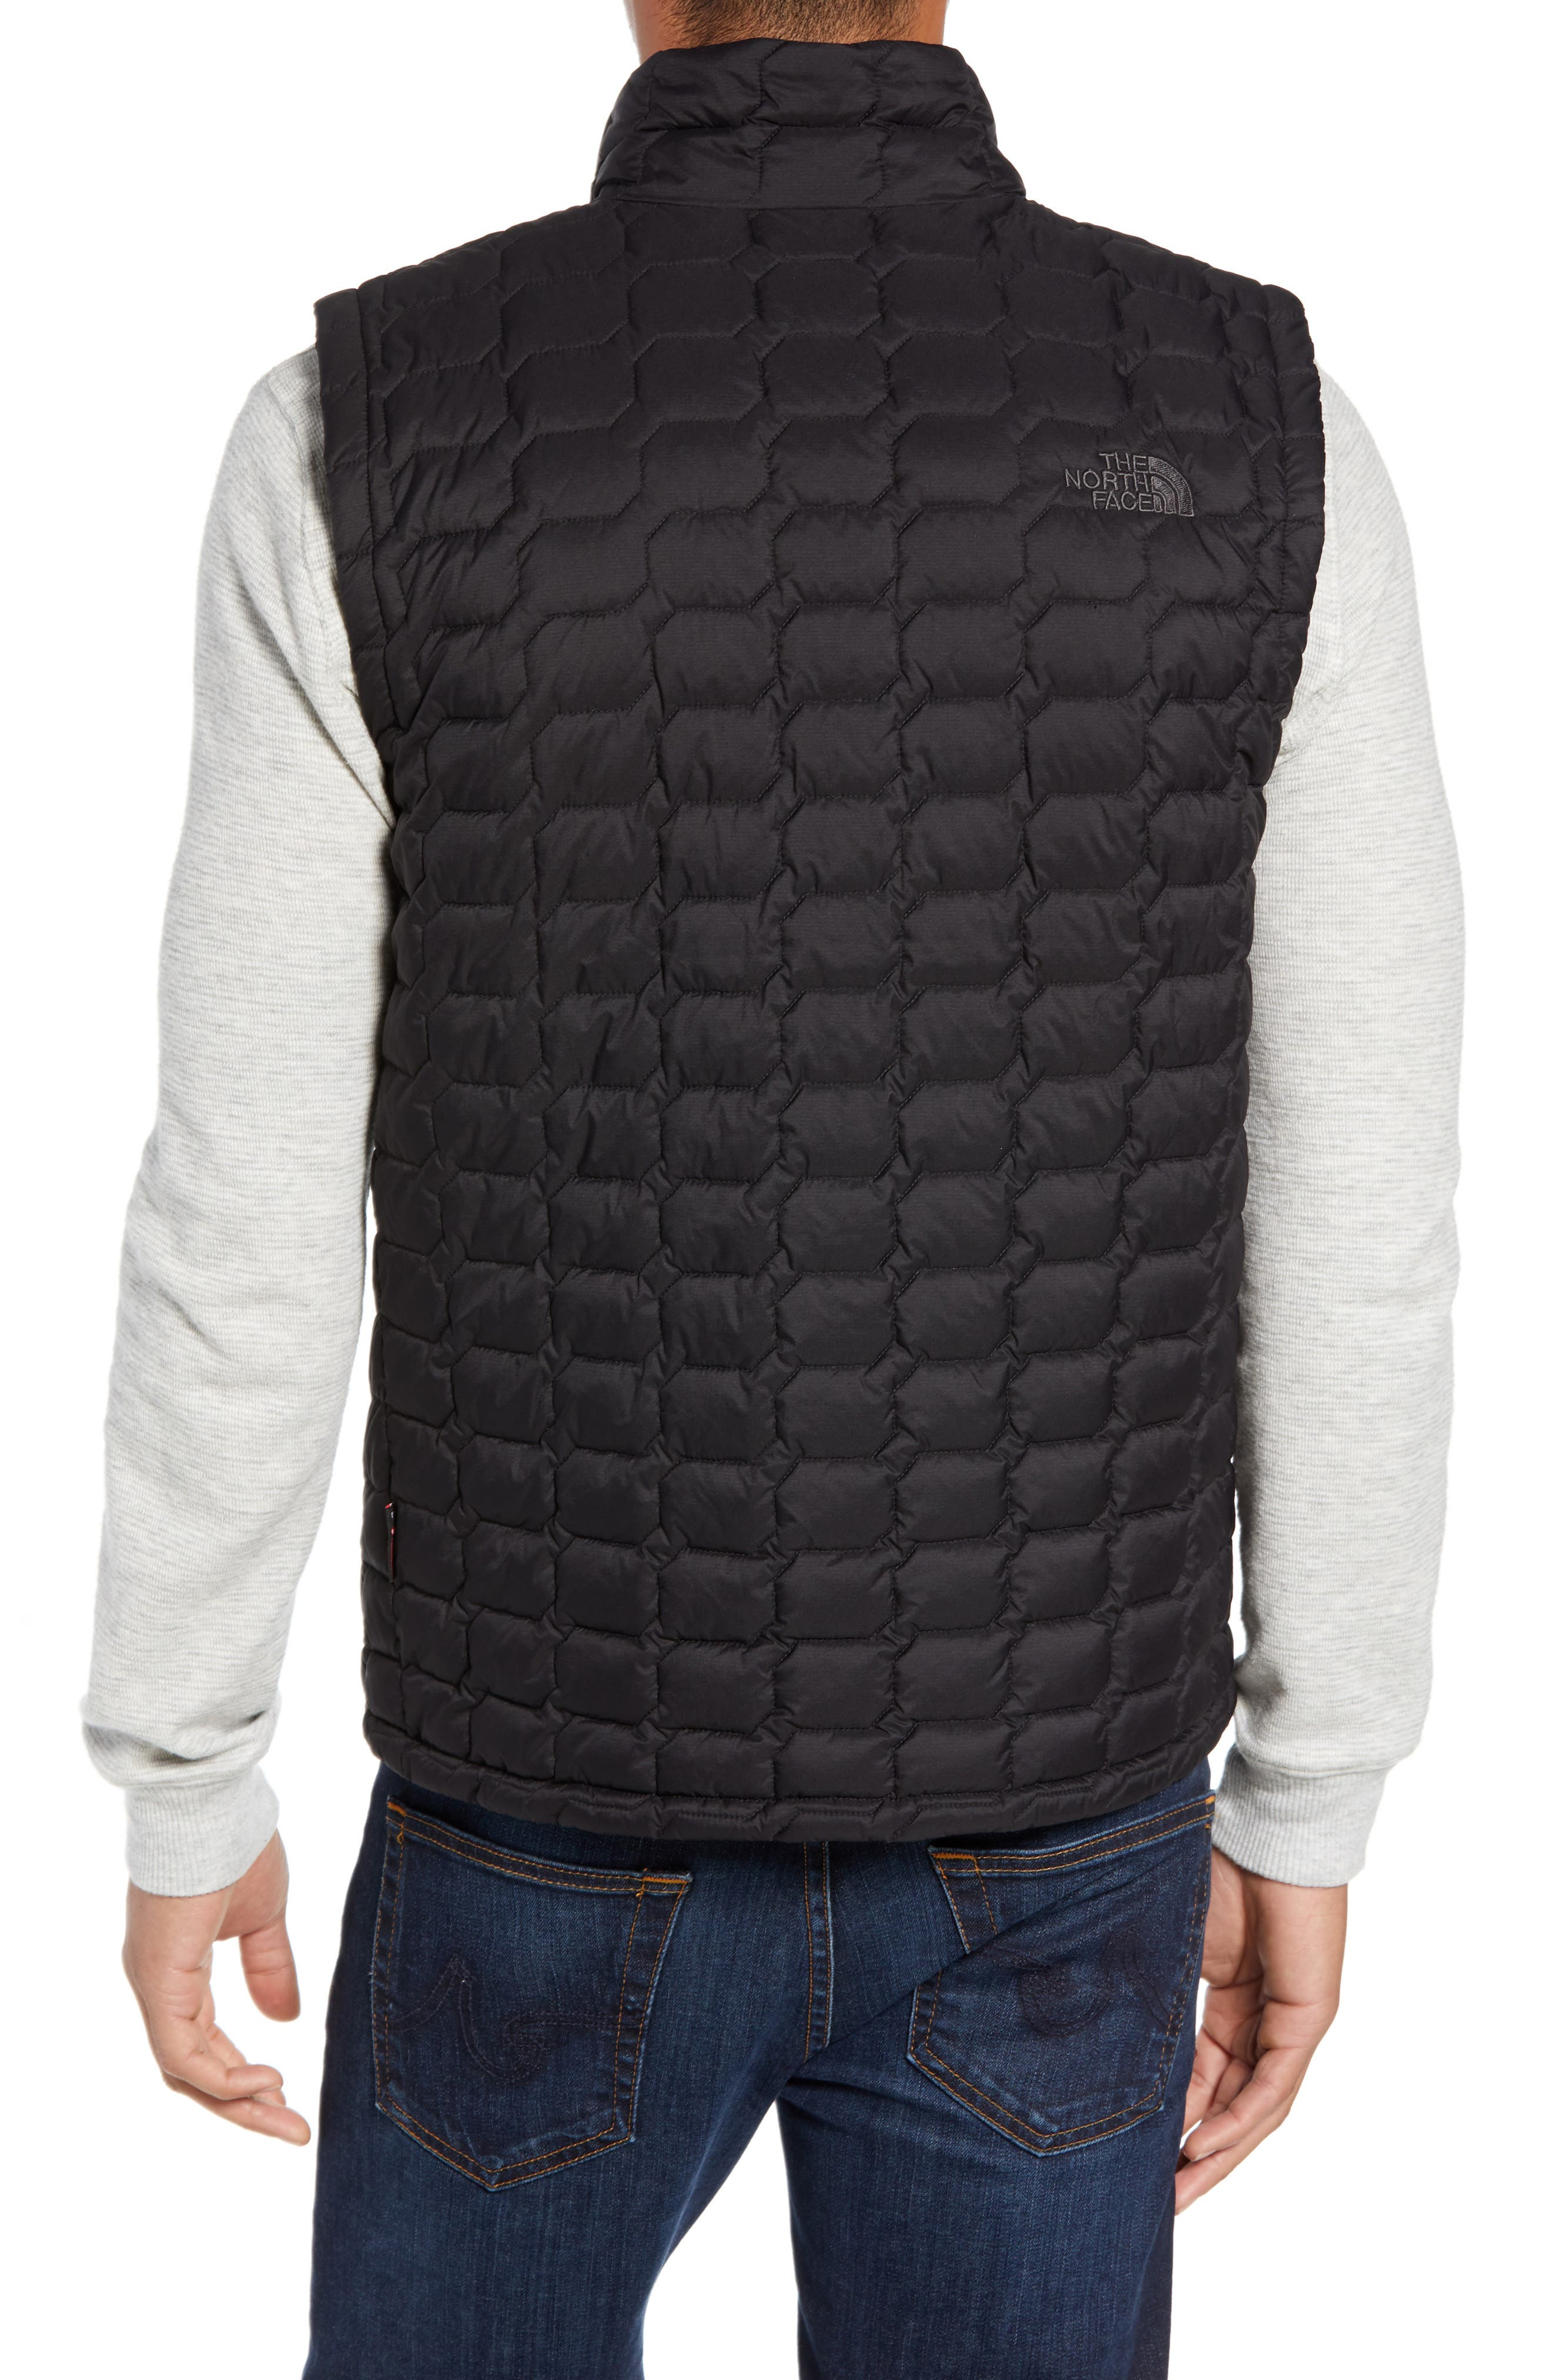 THE NORTH FACE, Thermoball<sup>®</sup> PrimaLoft<sup>®</sup> Vest, Alternate thumbnail 2, color, TNF BLACK MATTE